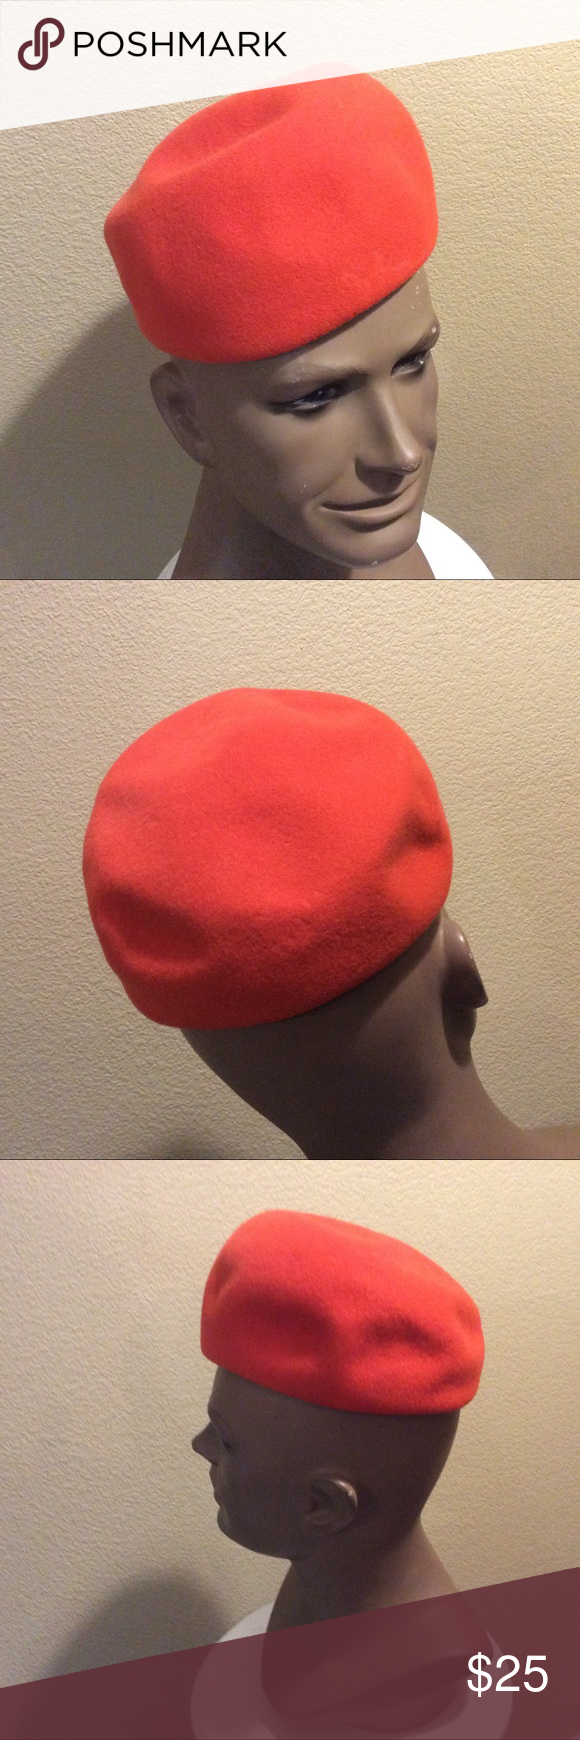 98bf91ba27d Vtg. 1960 s Sears Millinery Beret-ish Hat Cool ladies hat you can pinch